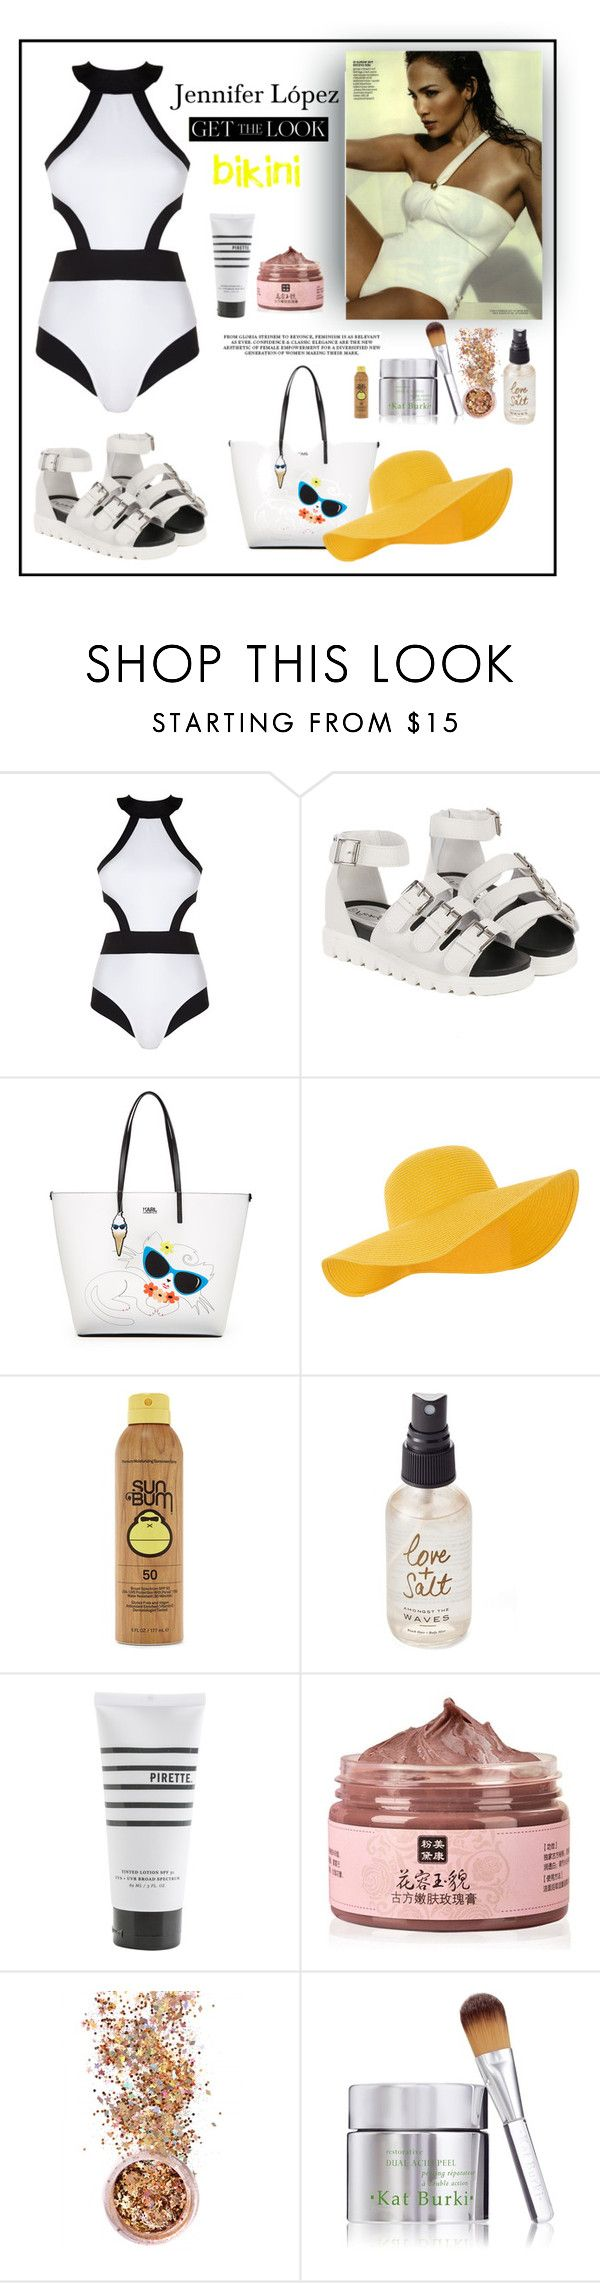 """""""Jennifer López"""" by siemprebellaquieroestar ❤ liked on Polyvore featuring Oye Swimwear, Karl Lagerfeld, Accessorize, Forever 21, Olivine, Pirette, In Your Dreams, Kat Burki, GetTheLook and Swimsuits"""